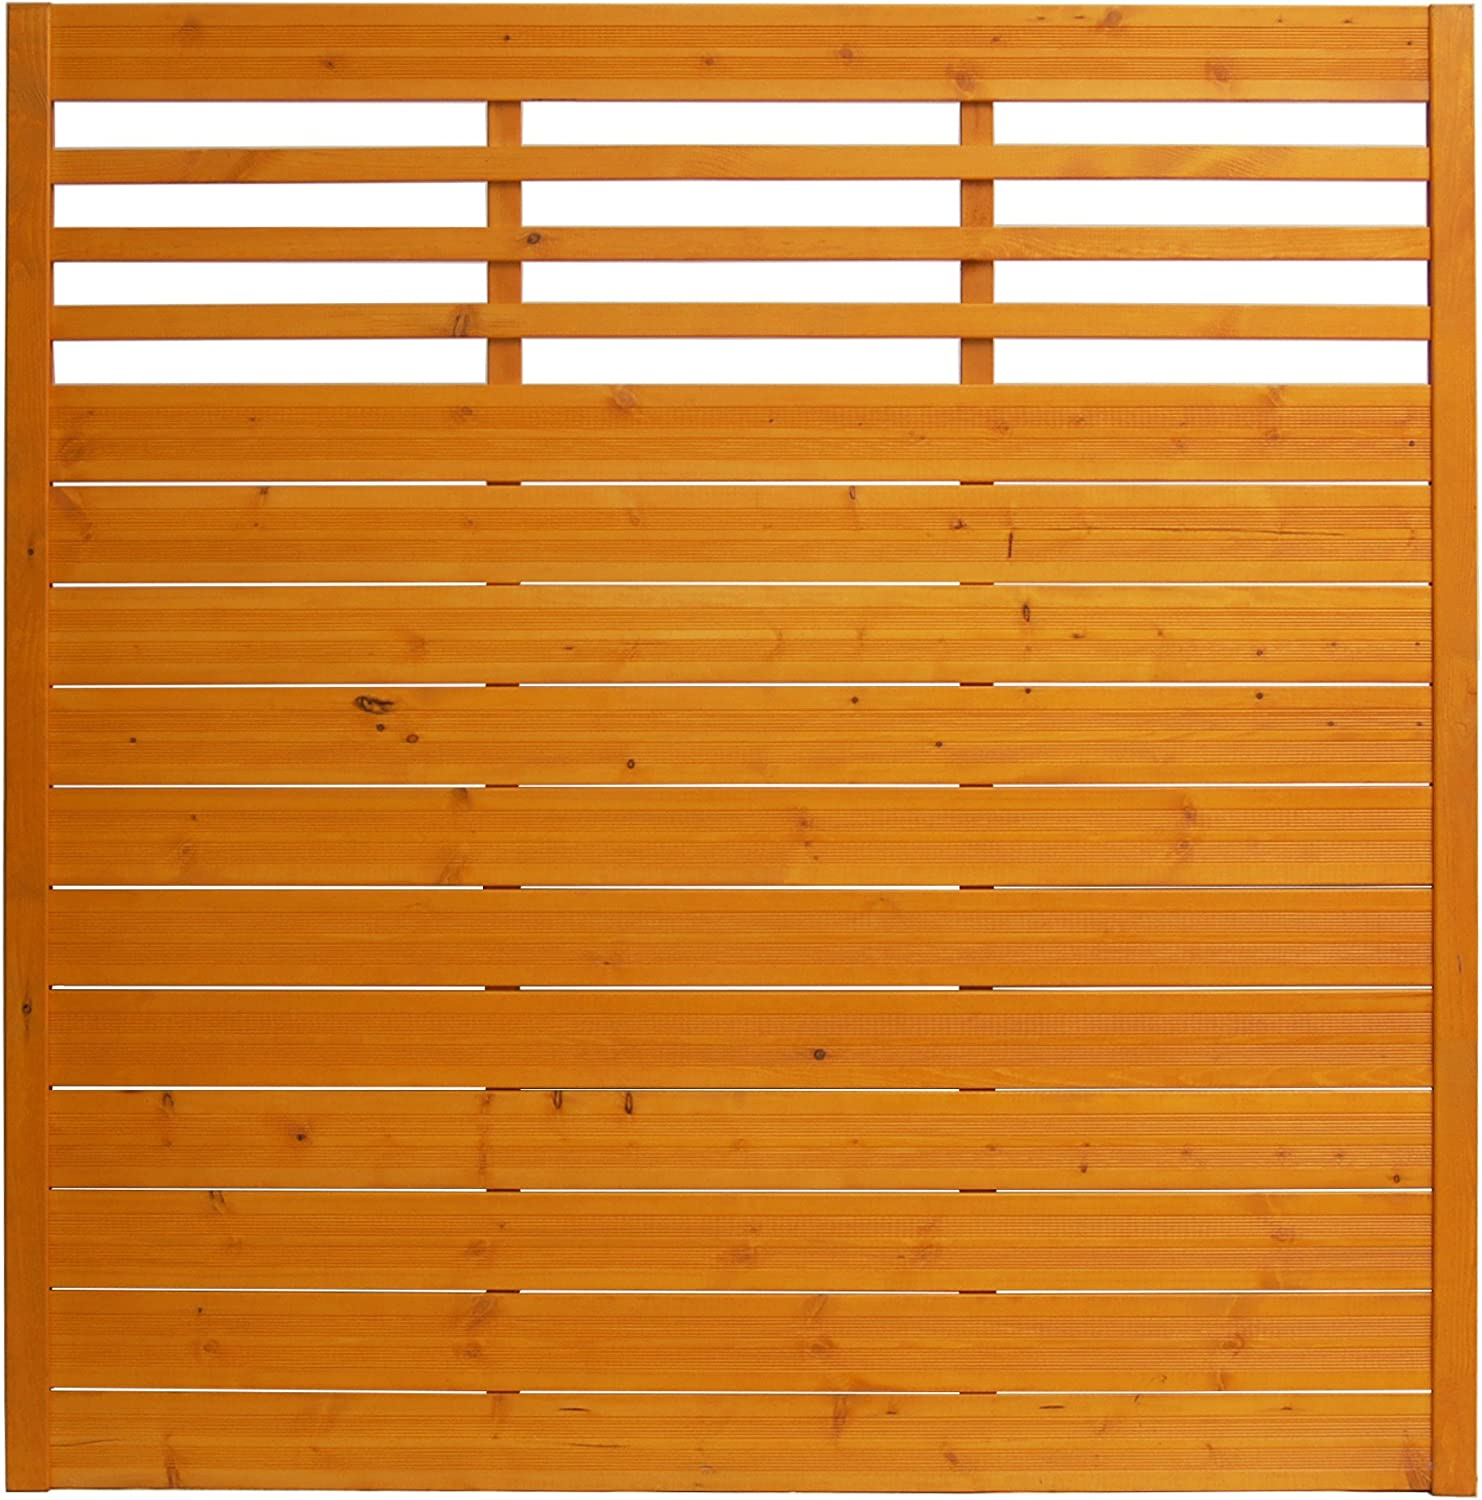 Andrewex wooden fence, garden fence, fencing panel 180 x 180, varnished, pinie